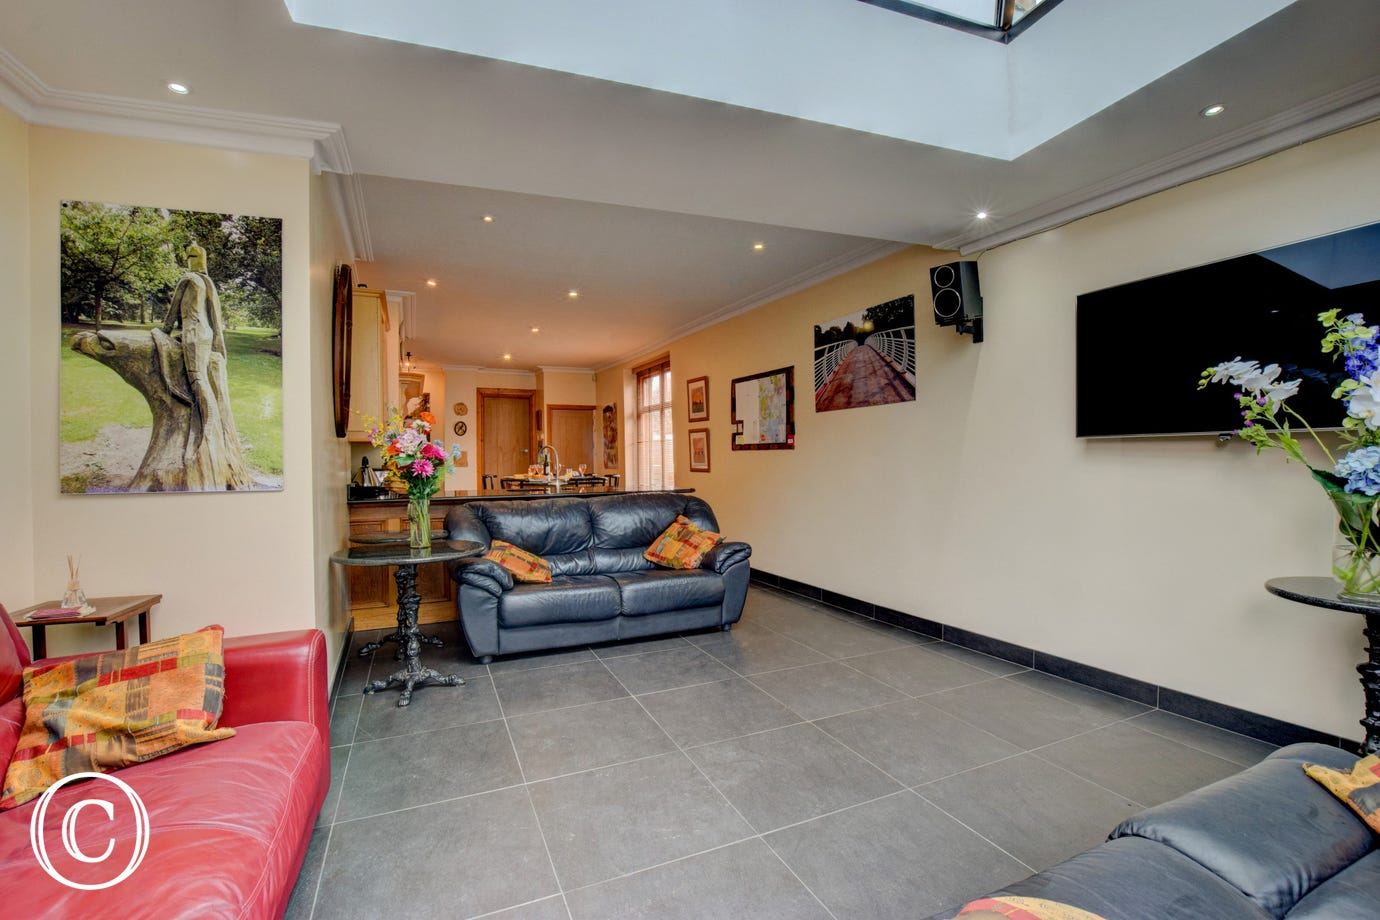 stylish Cardiff Townhouse - Lounge area with huge TV